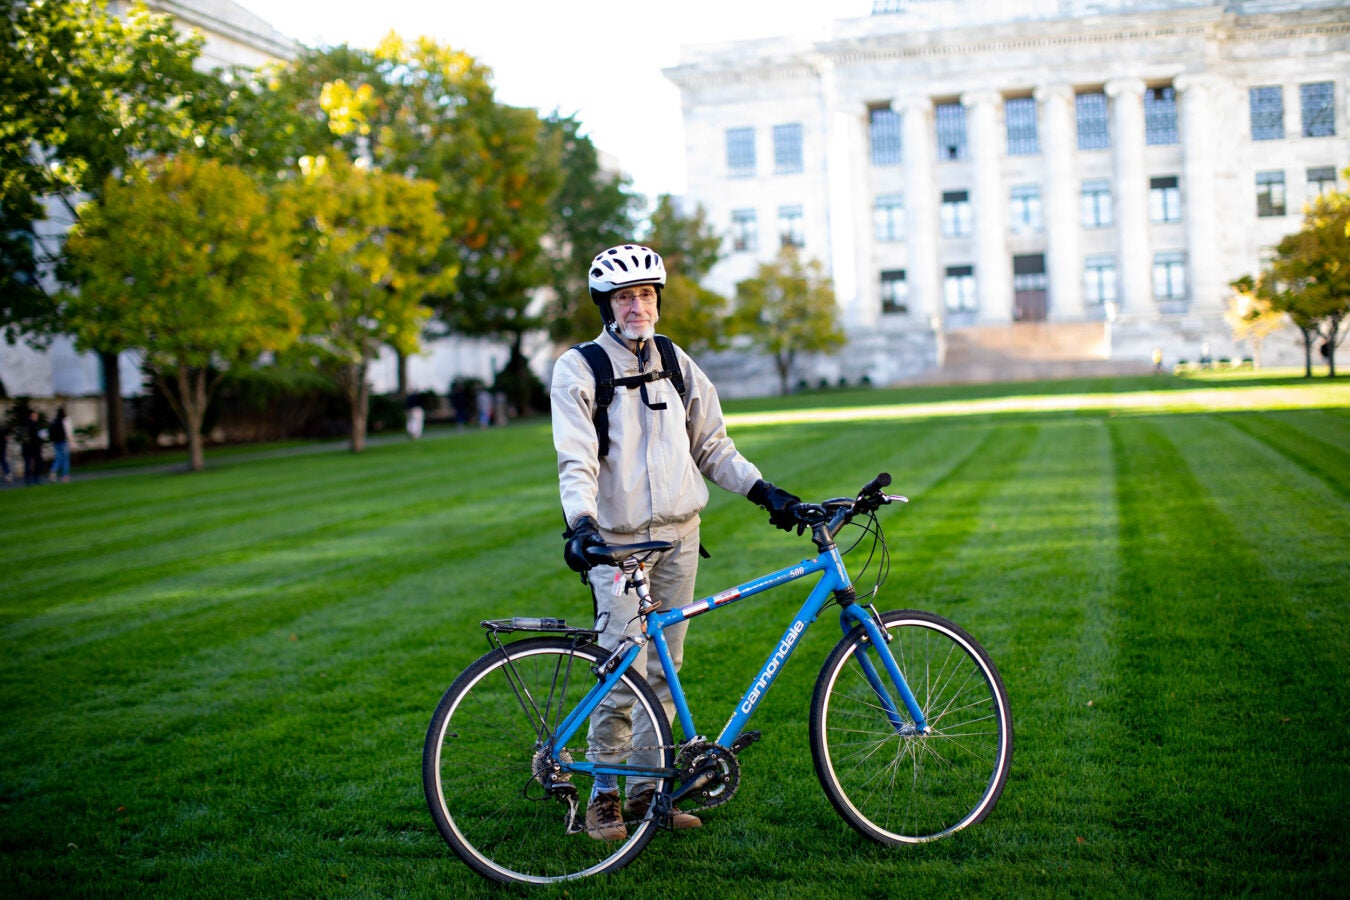 Jonathan Beckwith stands alongside his bicycle at Harvard Medical School.